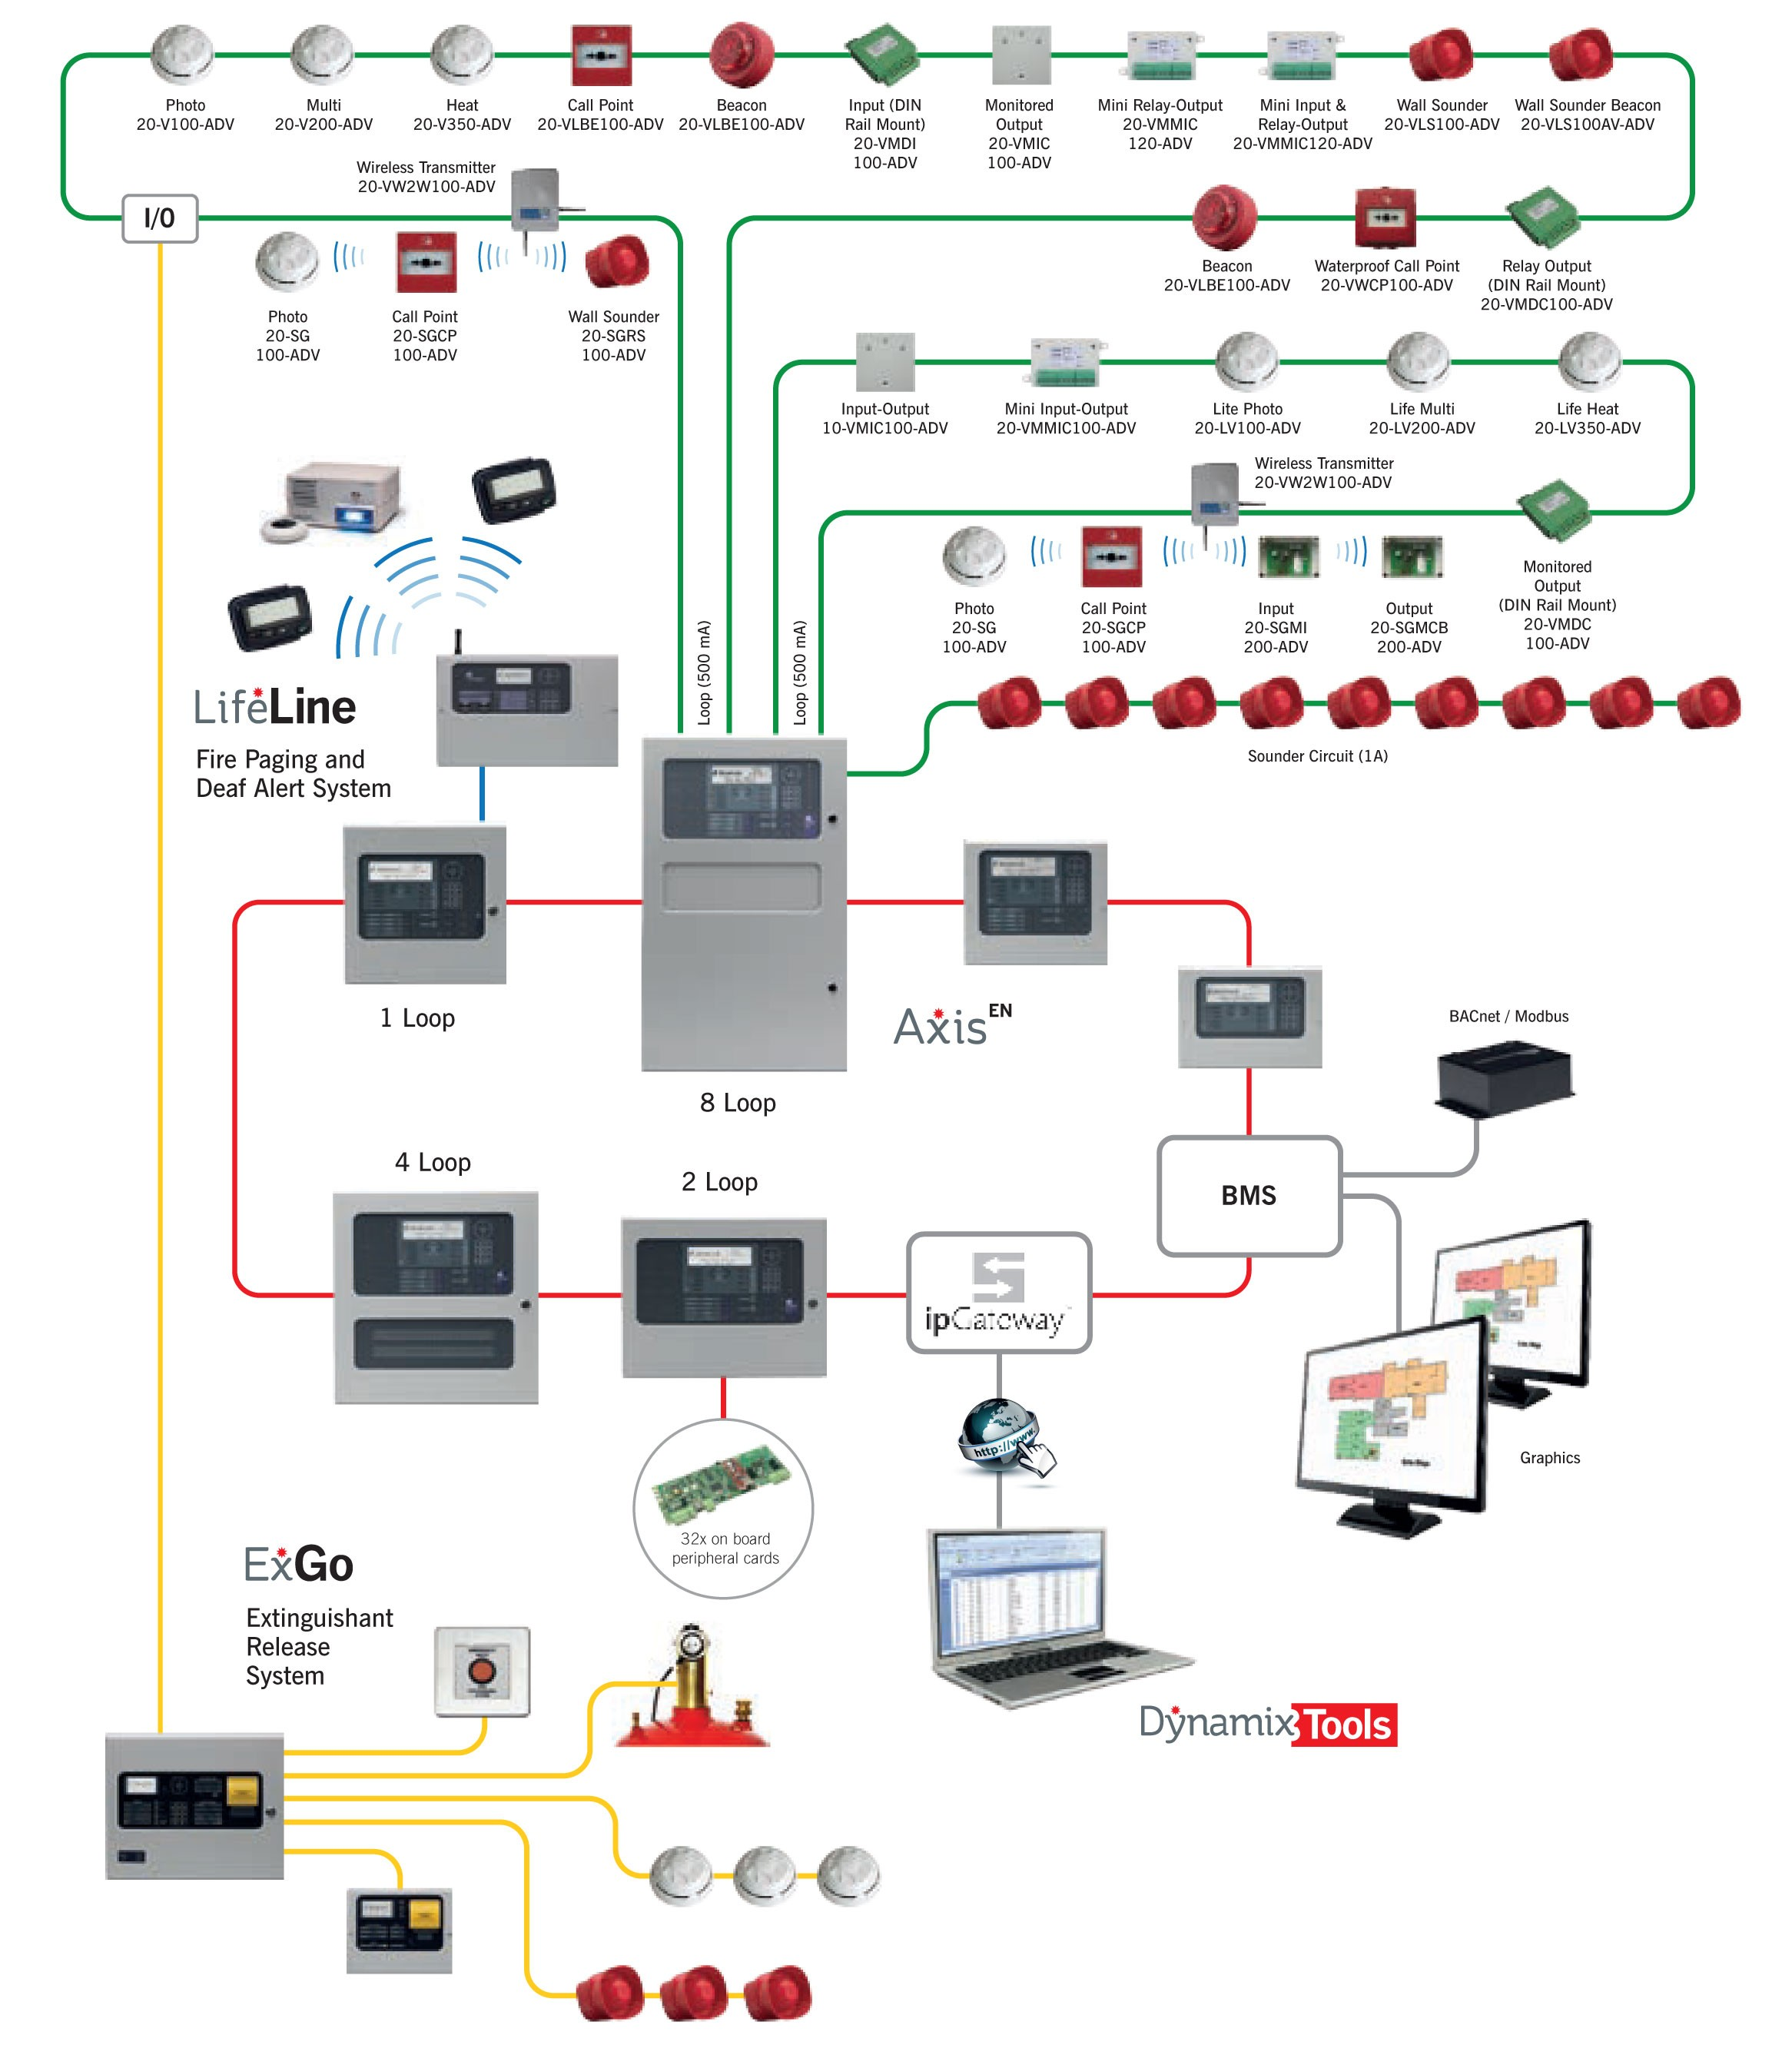 Home Security System Wiring Diagram Fire Alarm Addressable System Wiring Diagram for and Pdf Inside Of Home Security System Wiring Diagram